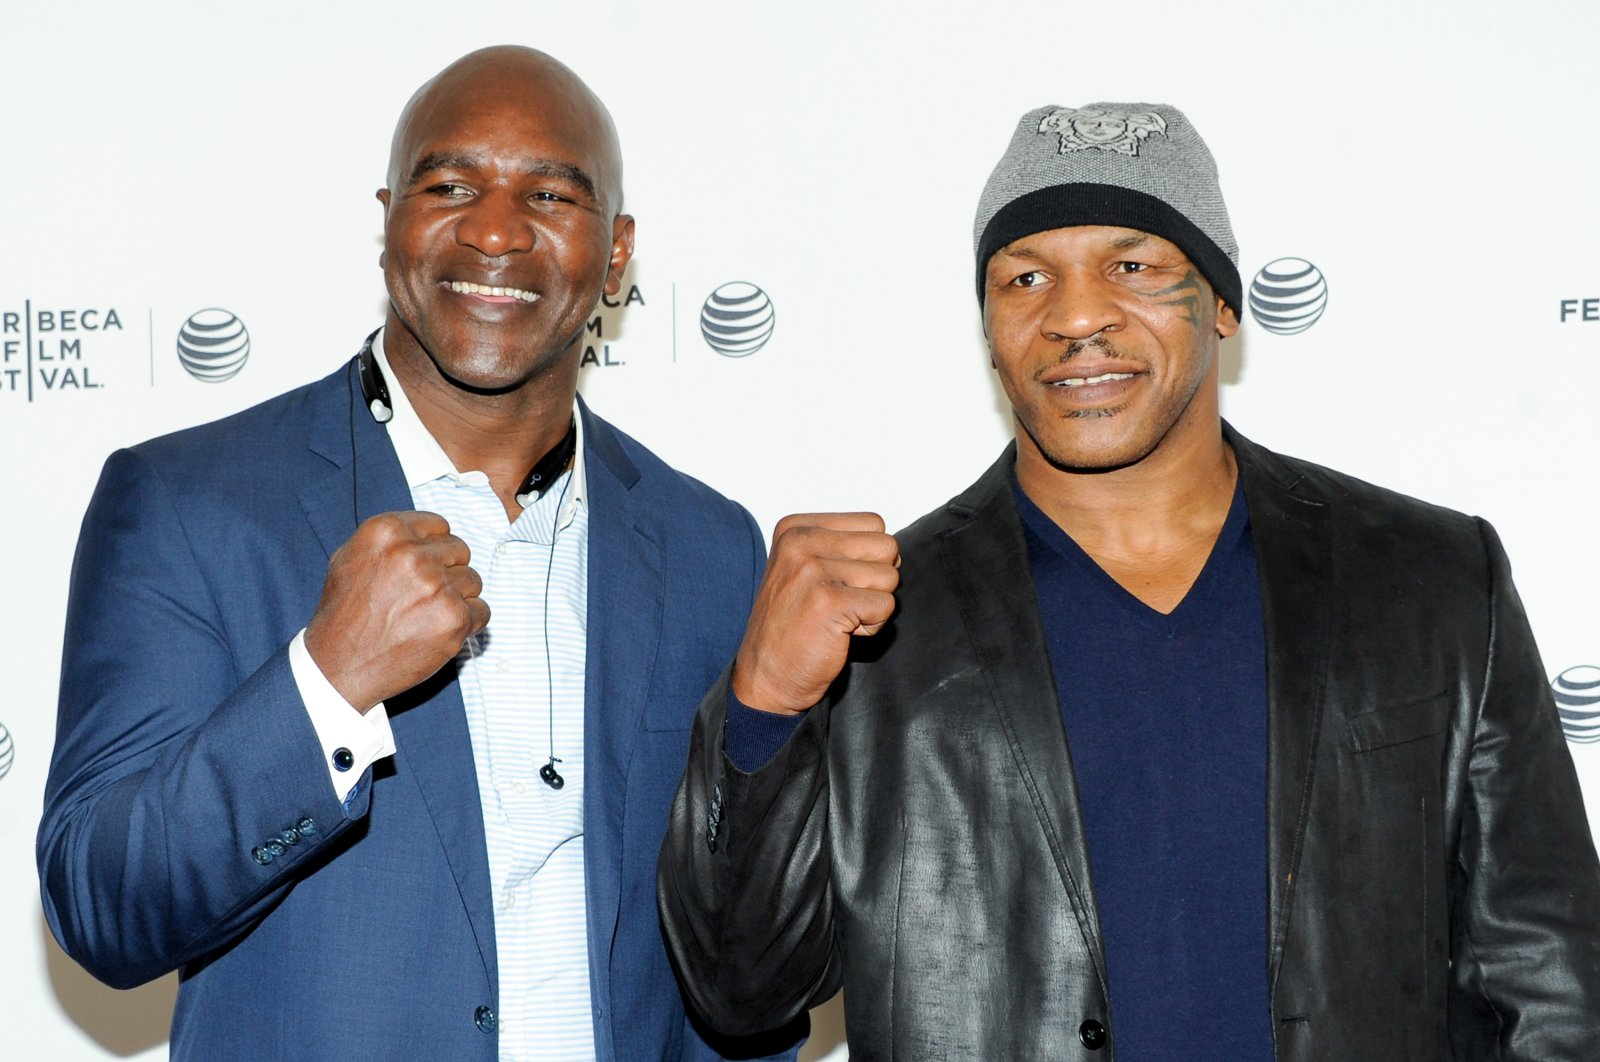 Evander Holyfield (L) and Mike Tyson pose together at an event in New York, U.S., April 19, 2014. (AP Photo)